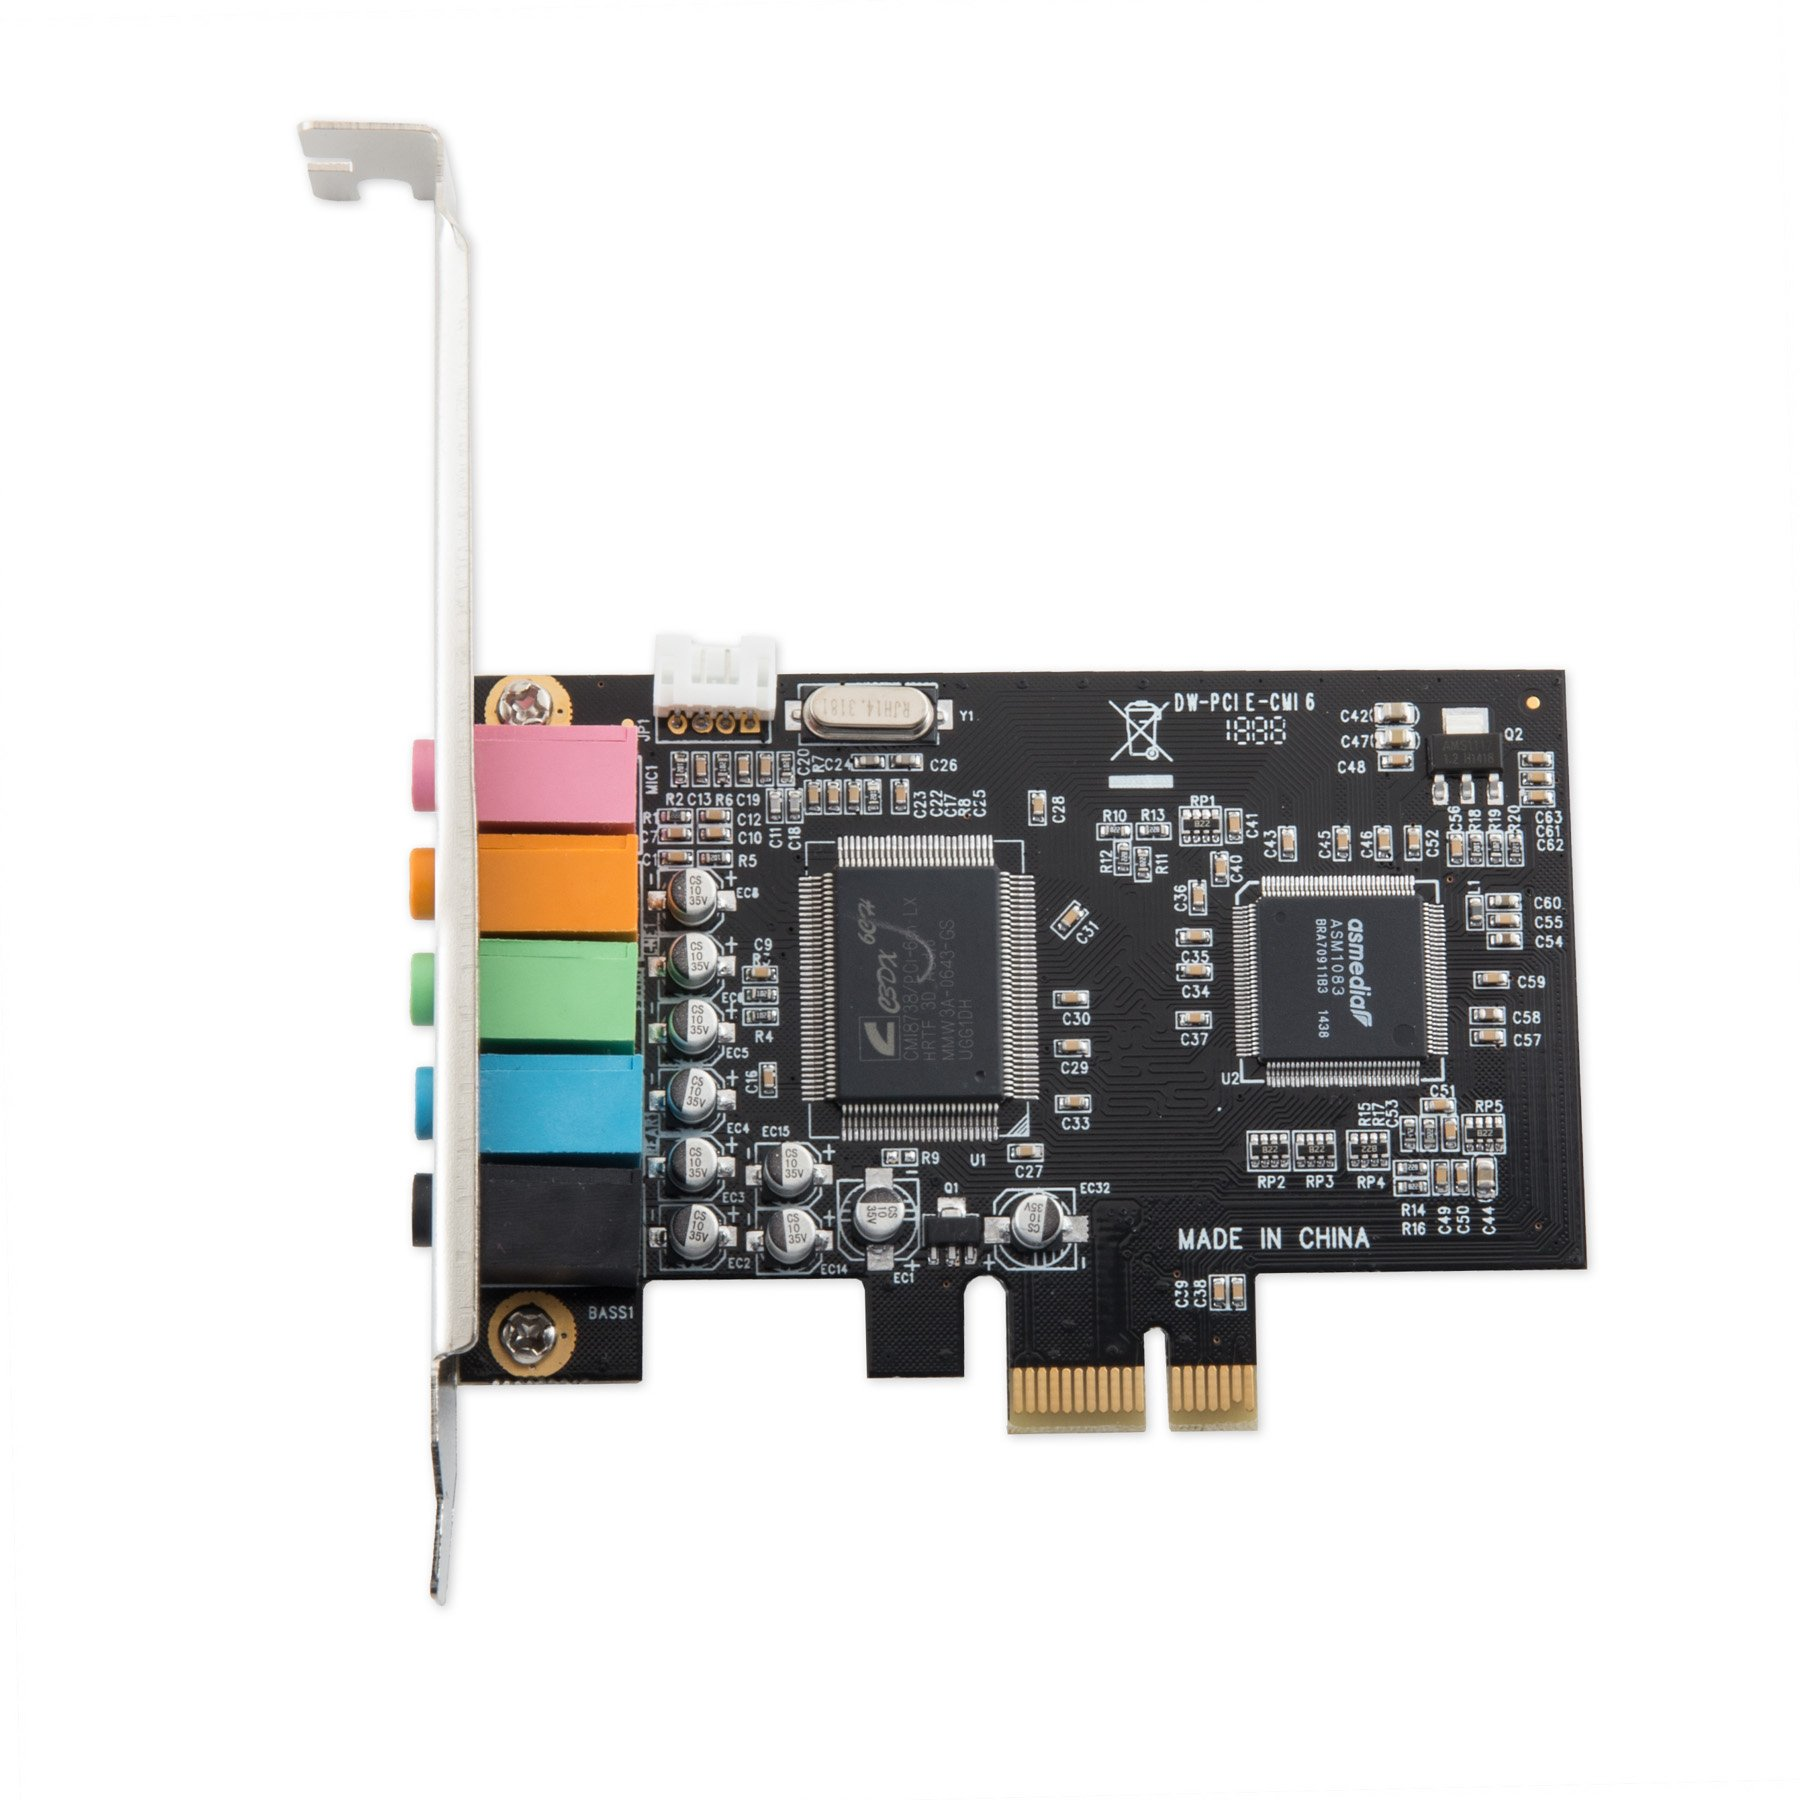 Syba IO Crest 5.1 Channel PCIe X1 Sound Card Sound Cards SI-PEX63096 by Syba (Image #2)